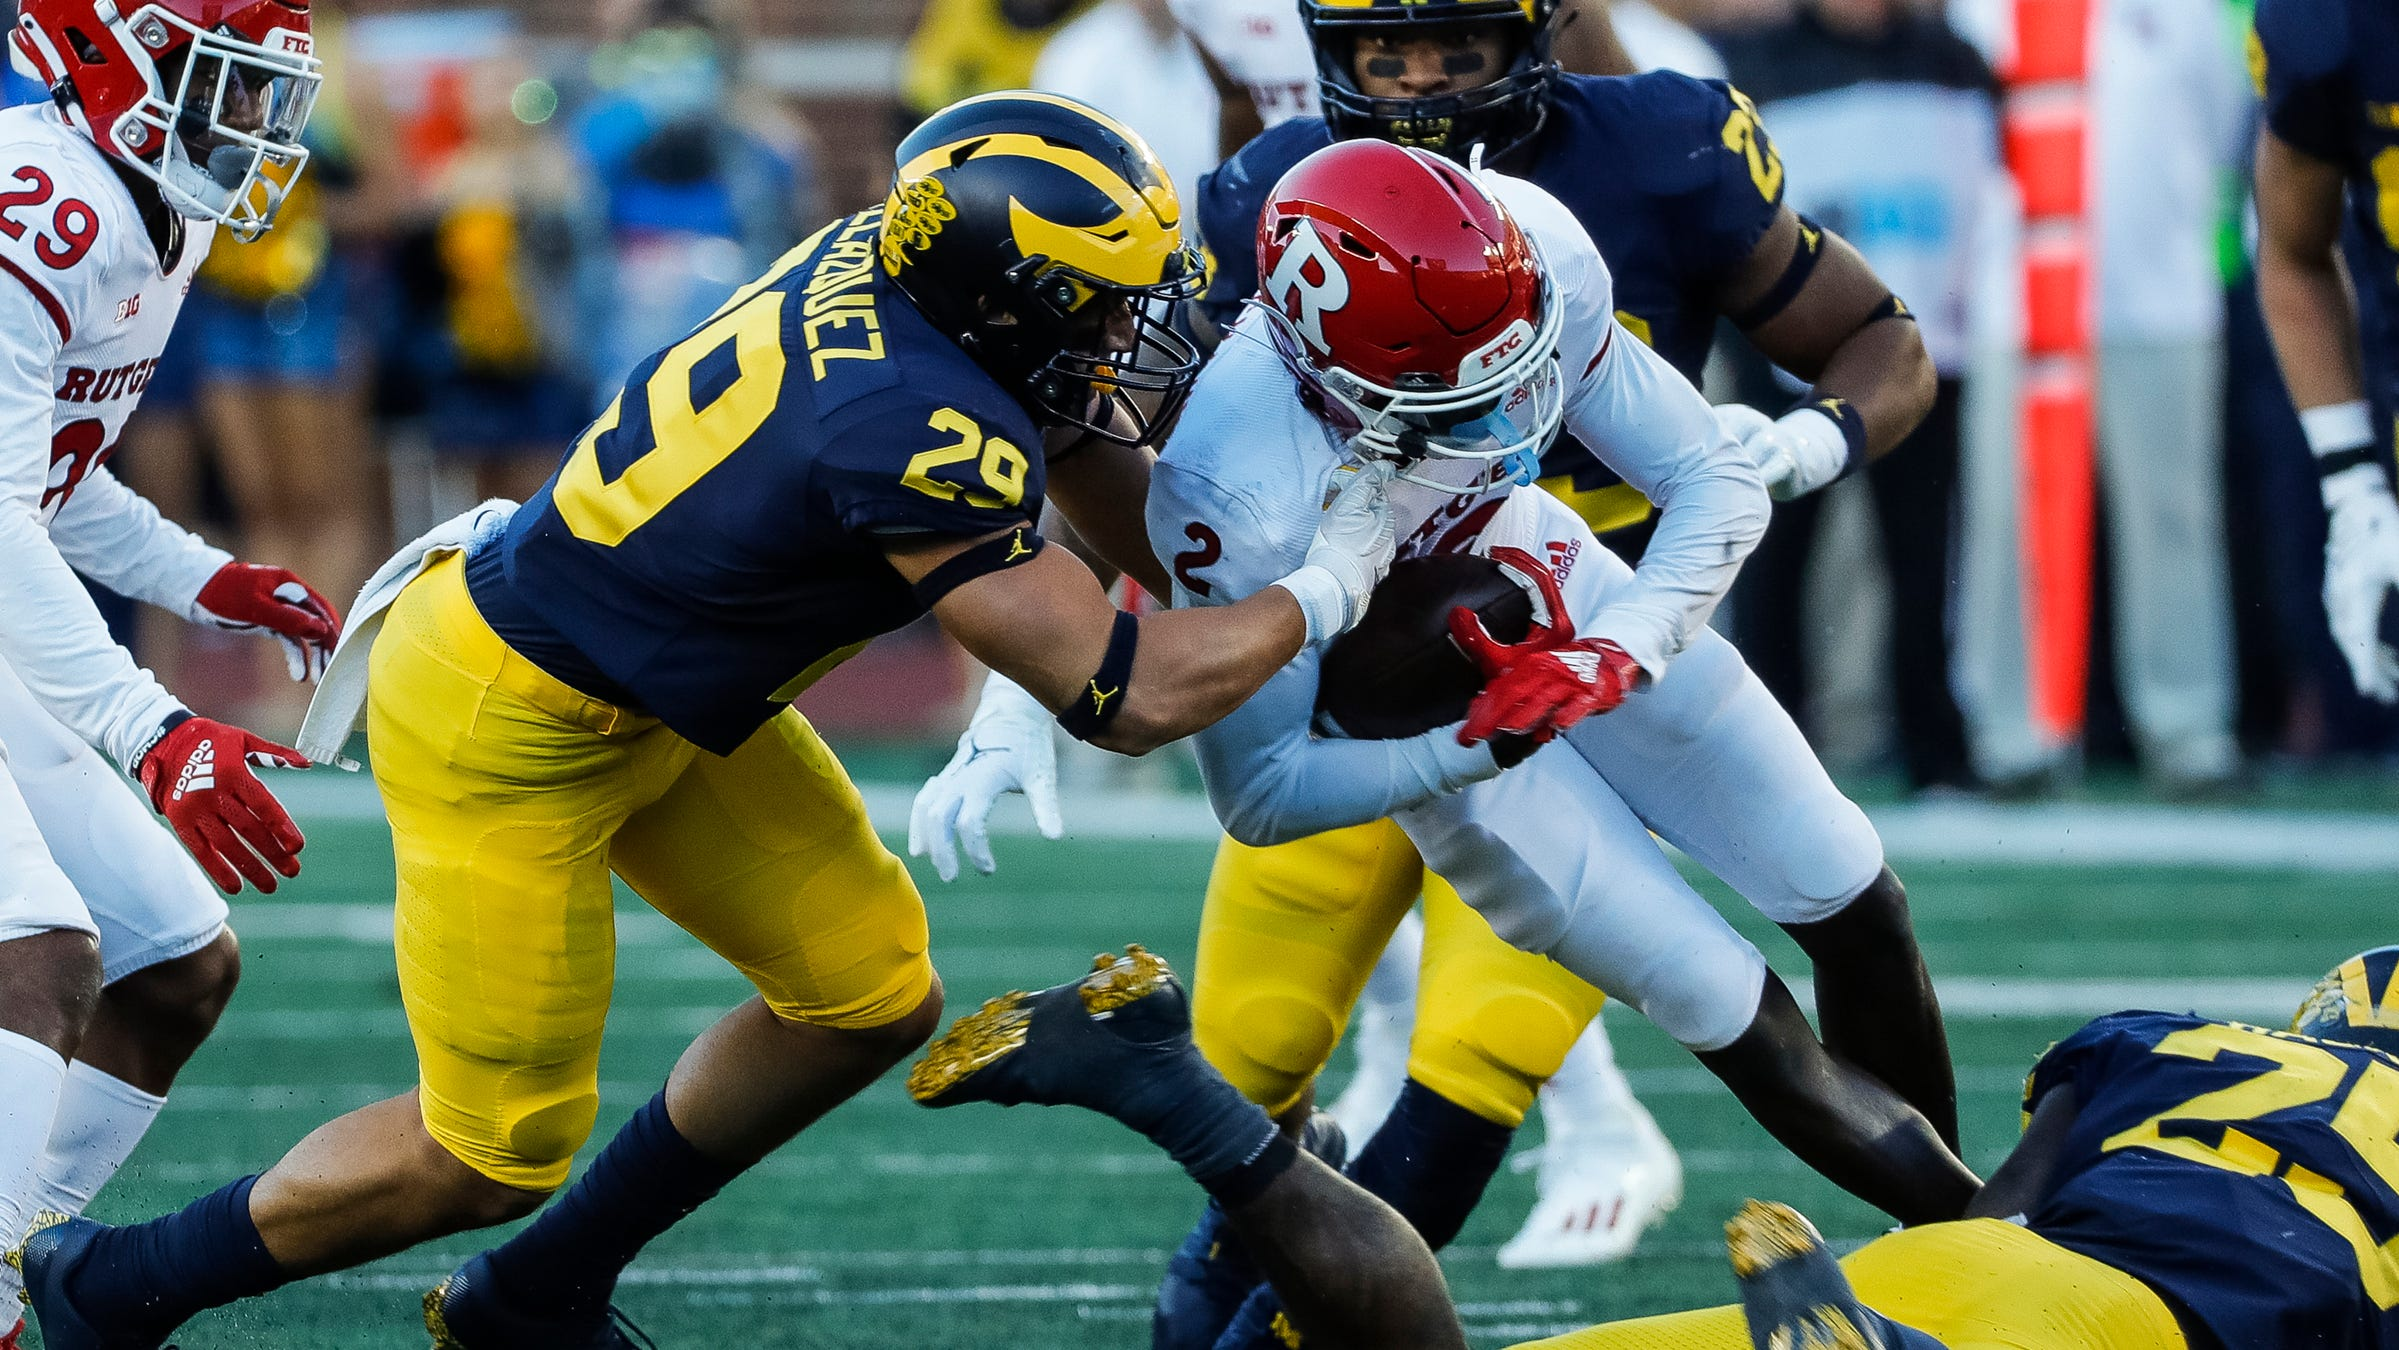 Michigan football: Defensive players stepped up as offense flopped